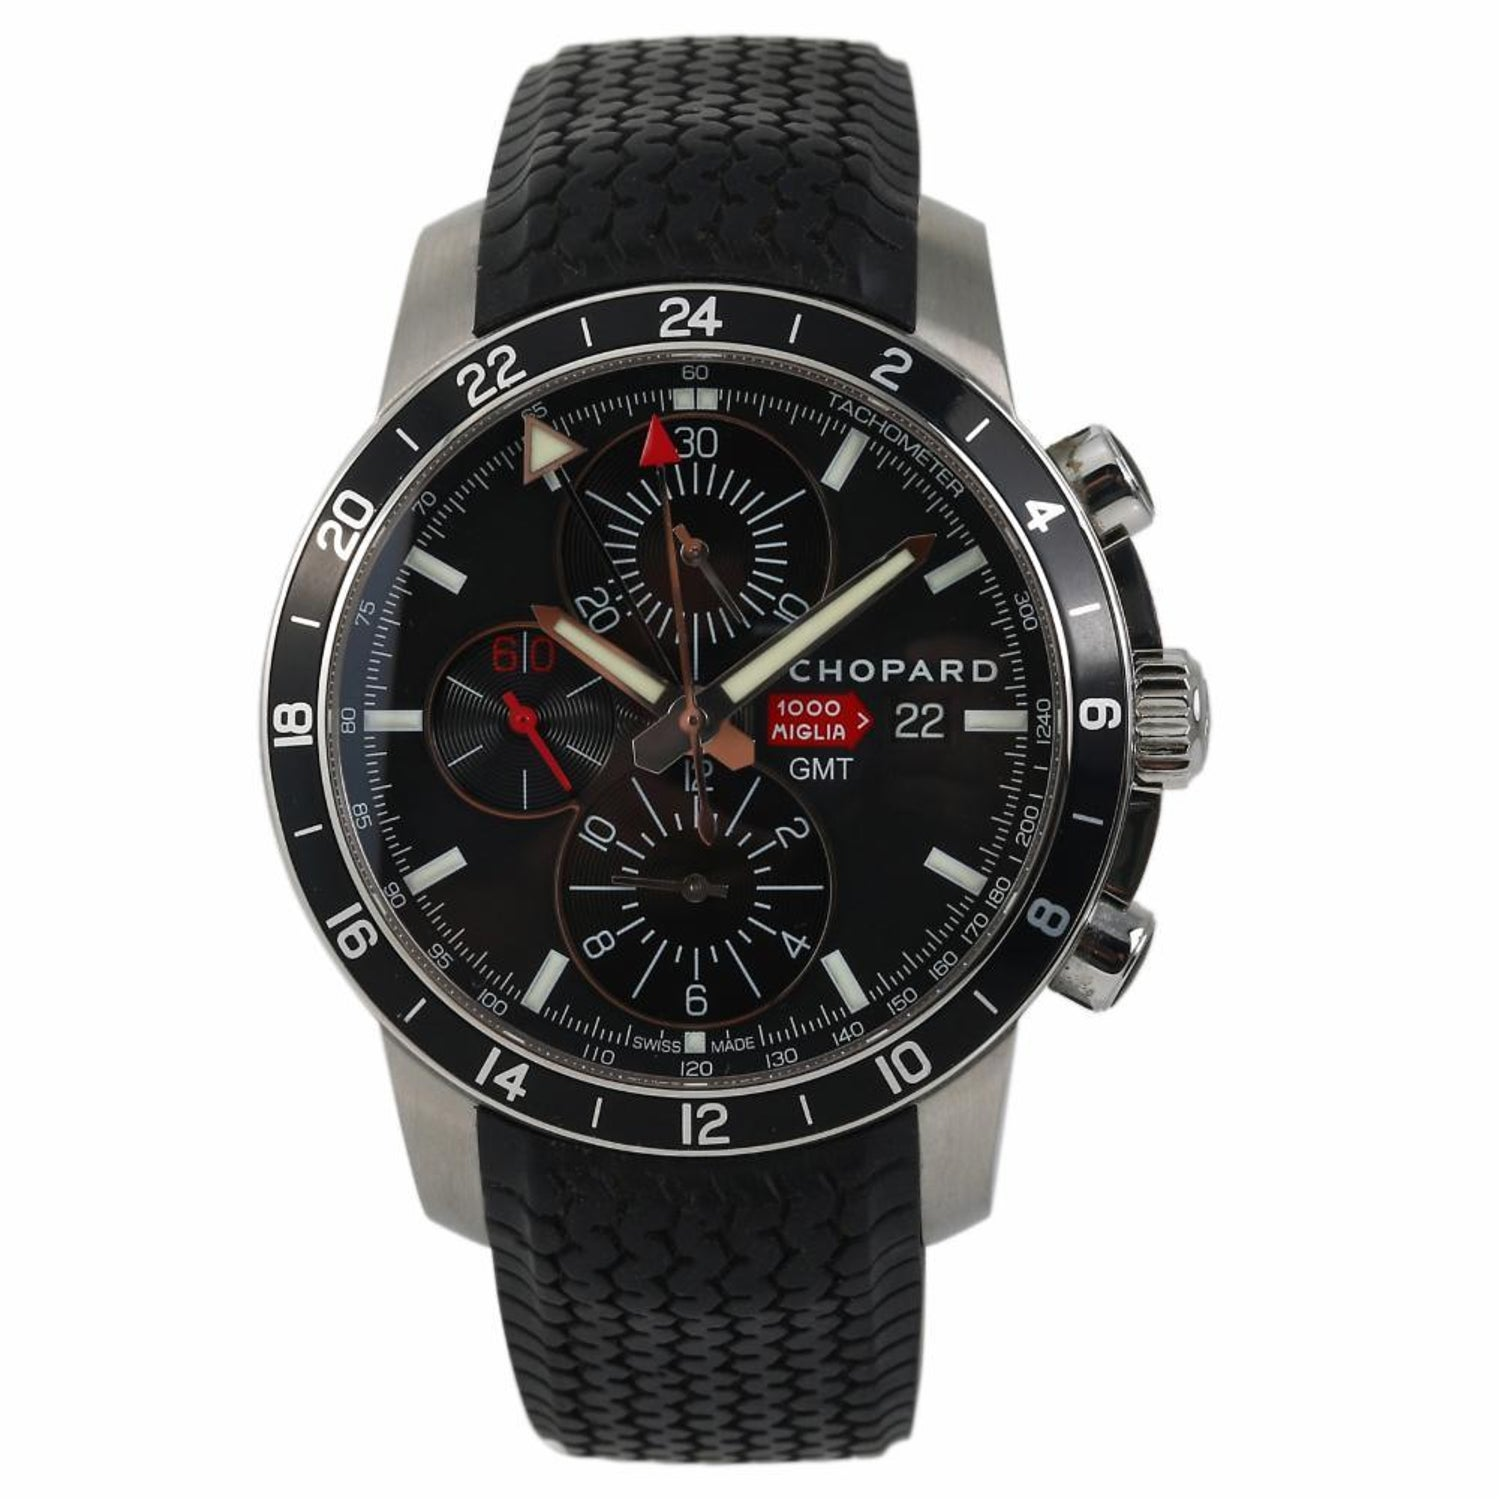 8c45745806d0 Chopard Mille Miglia Chrono GMT 168550 Men s Automatic Watch Black Dial SS  For Sale at 1stdibs